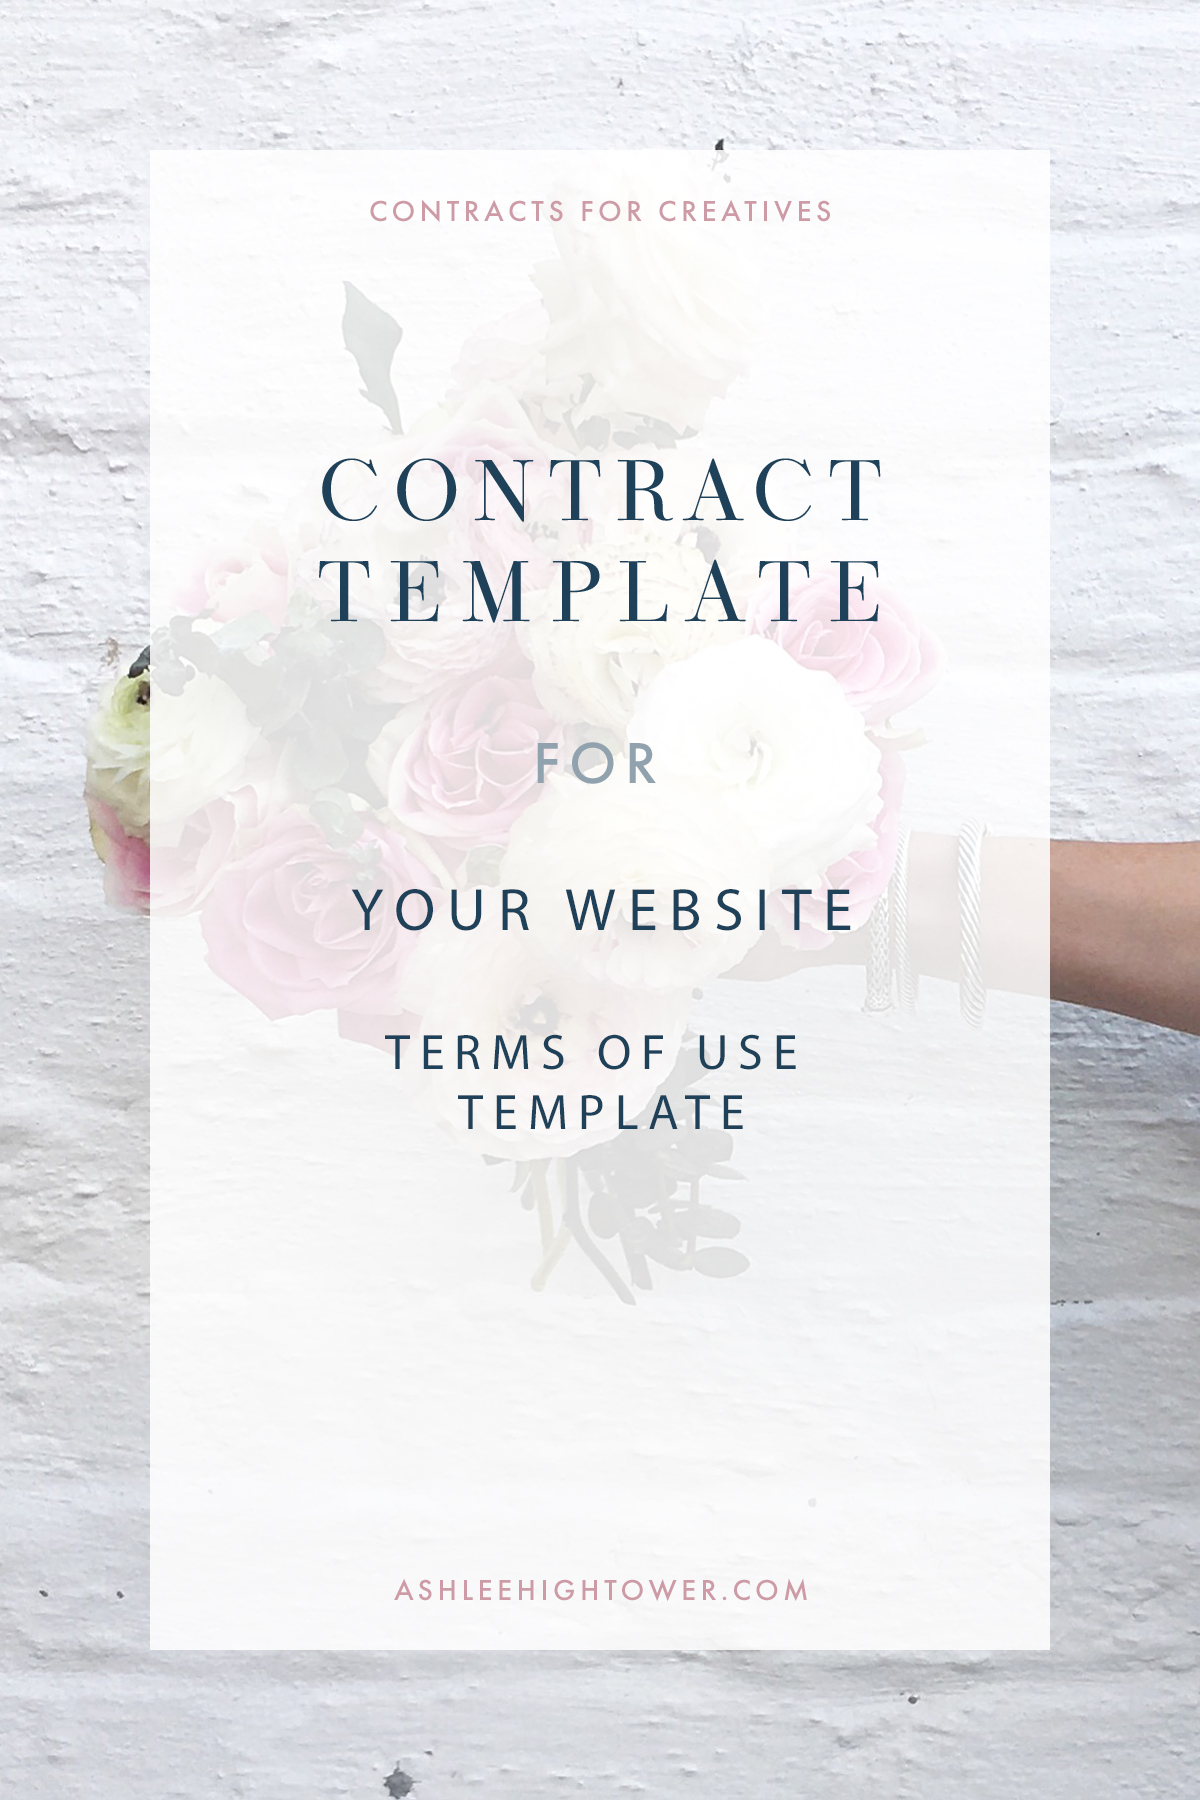 Terms of Use for Website | Contracts for Creatives